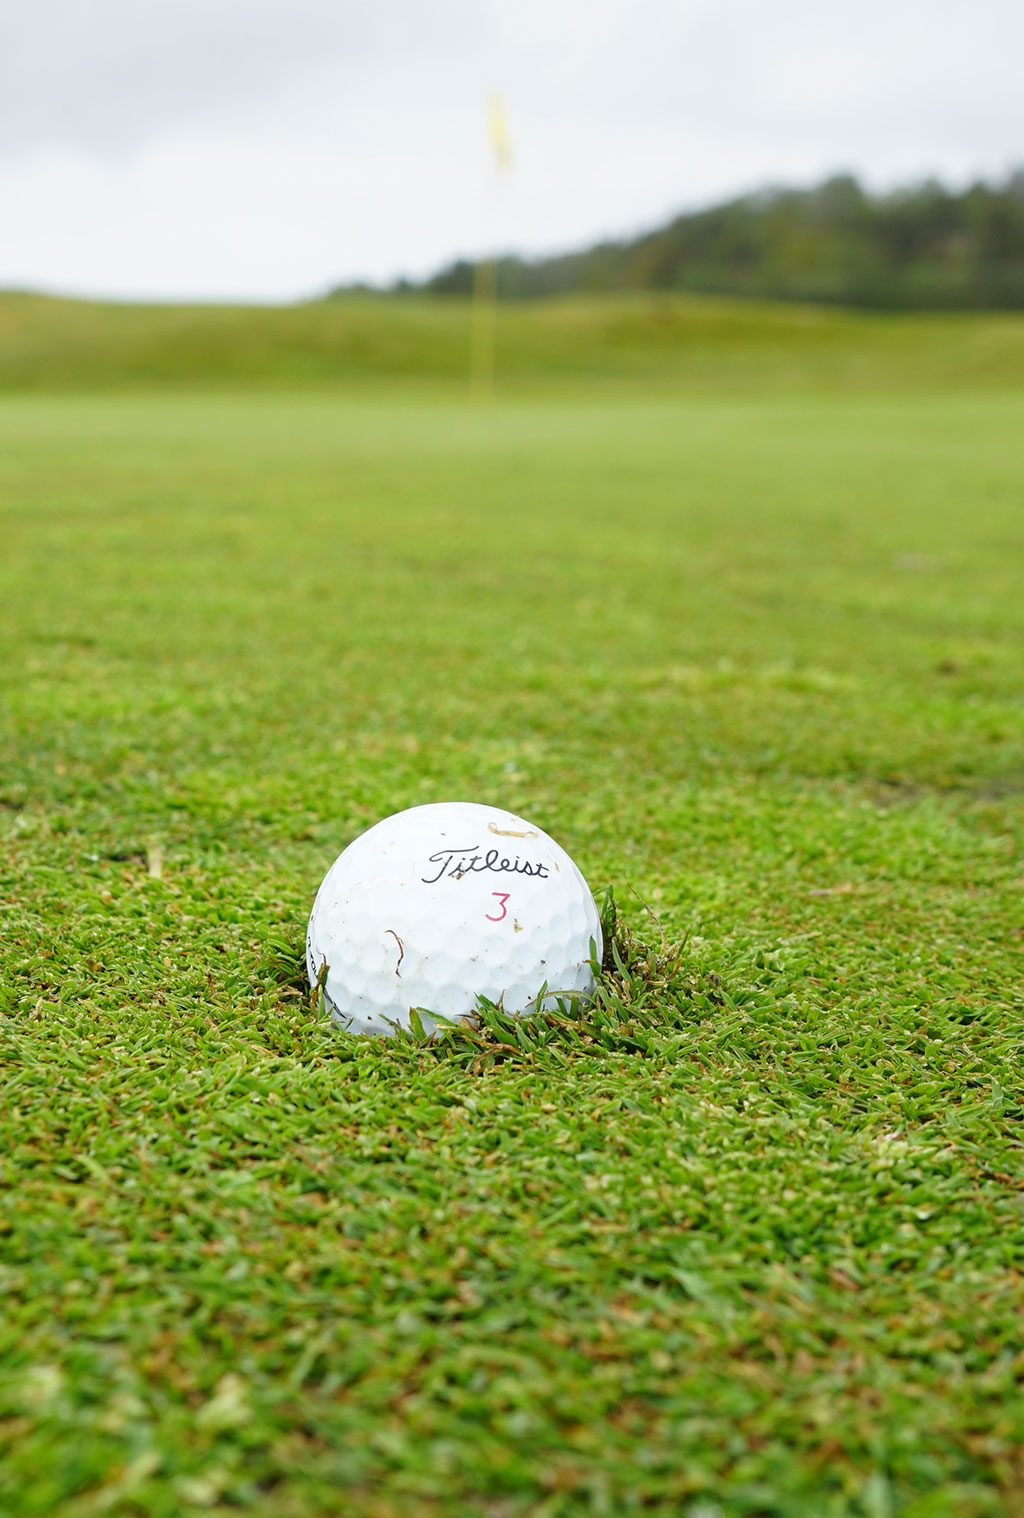 White Golf Ball on Green Grass Field